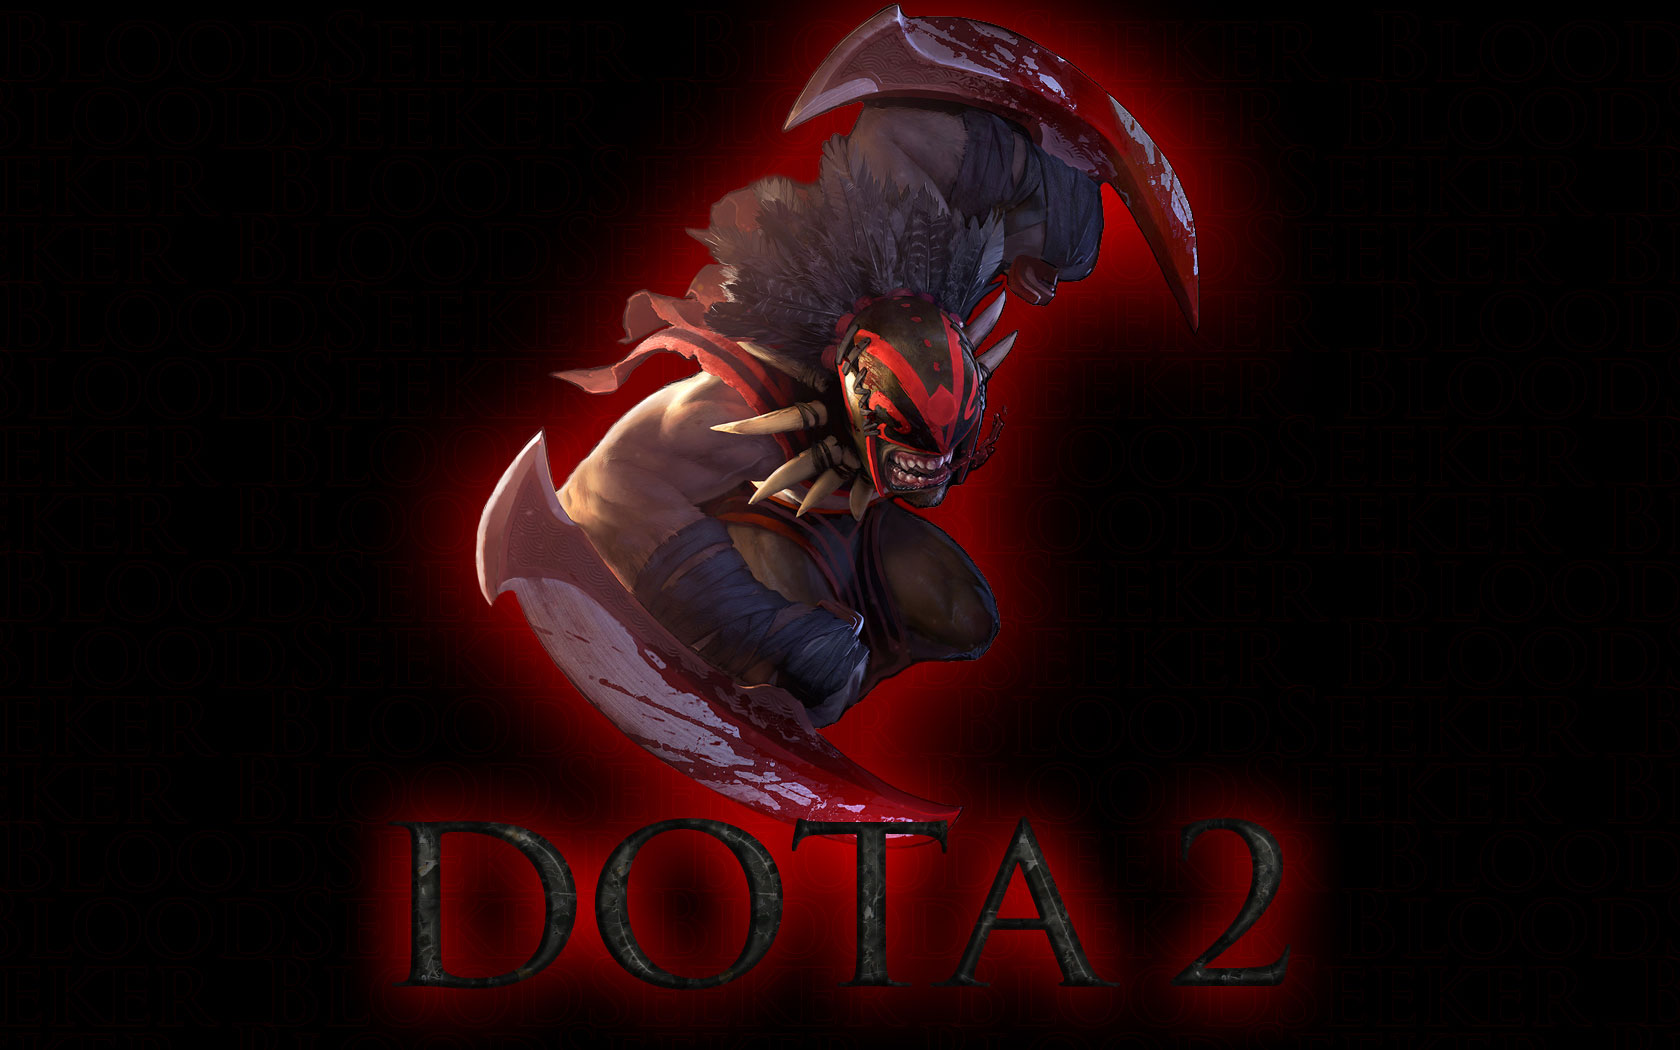 Bloodseeker dota2 – Dota 2 wallpaper